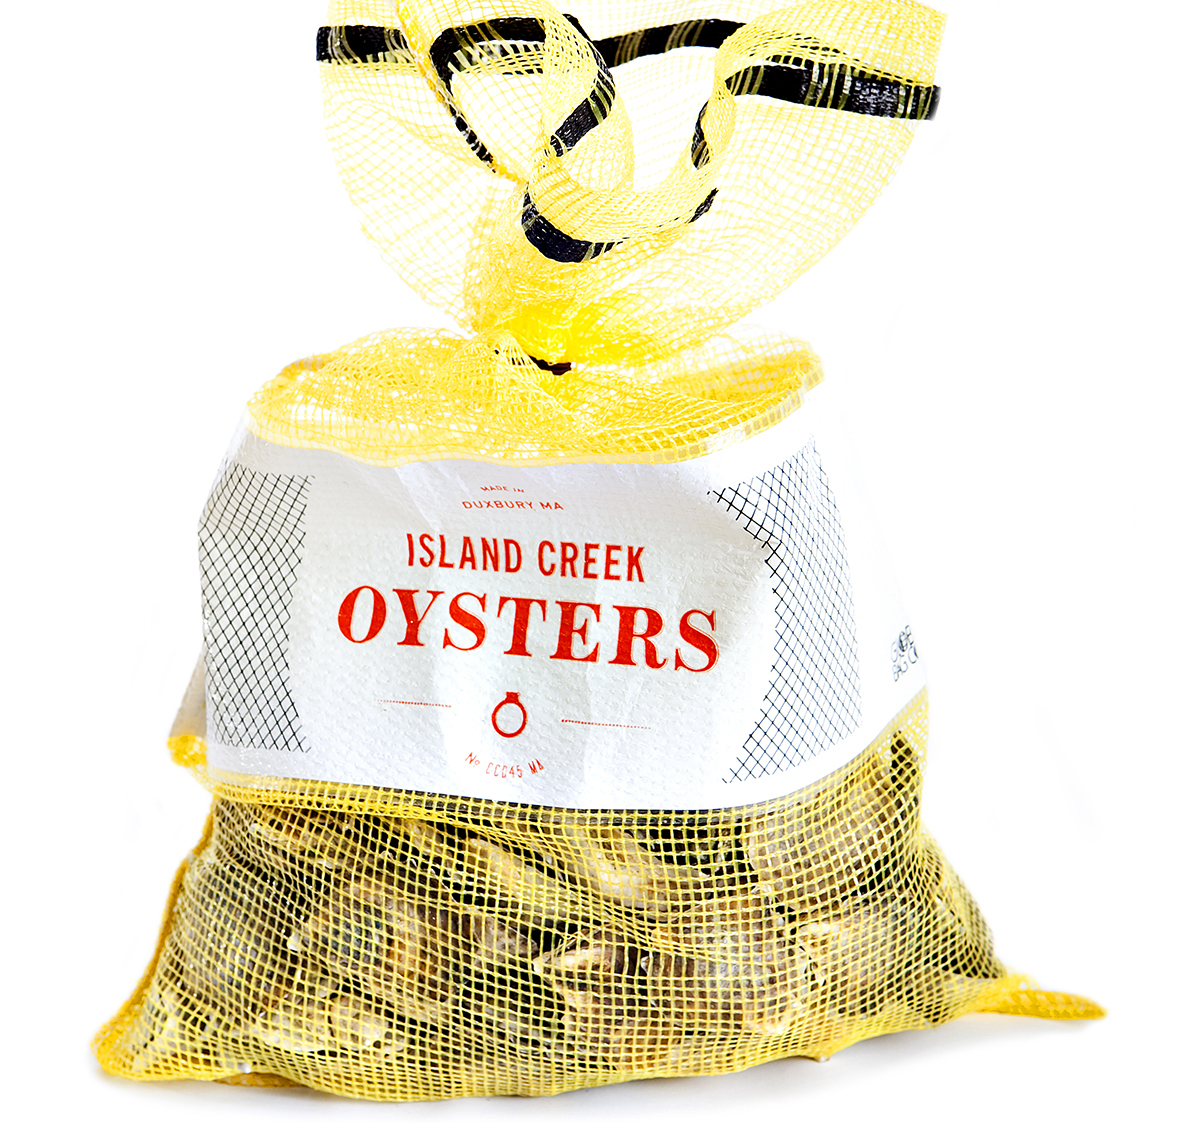 Island Creek Oysters Heads To Maine